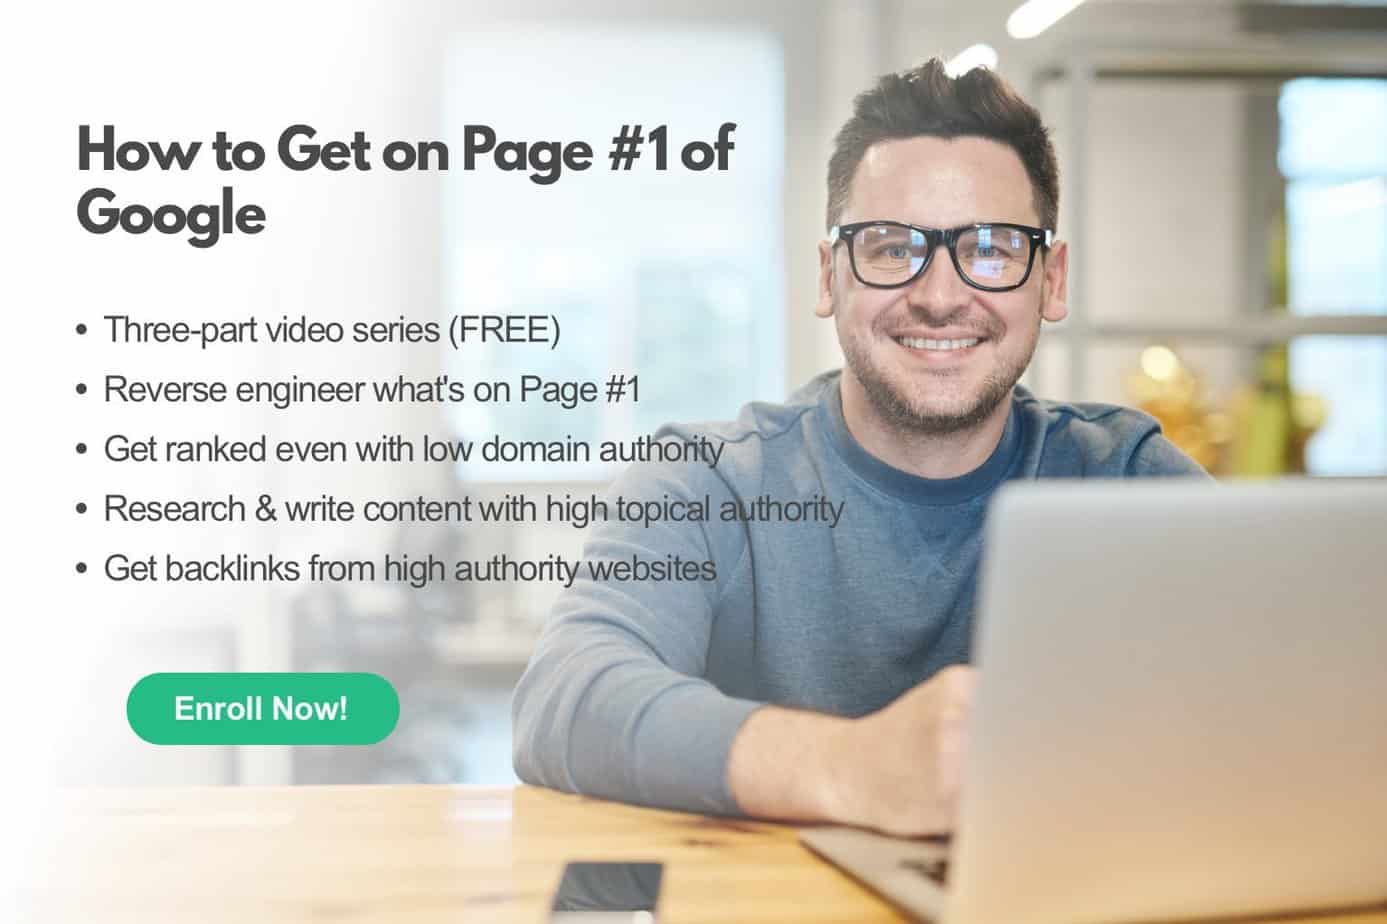 how to get on Page #1 of Google